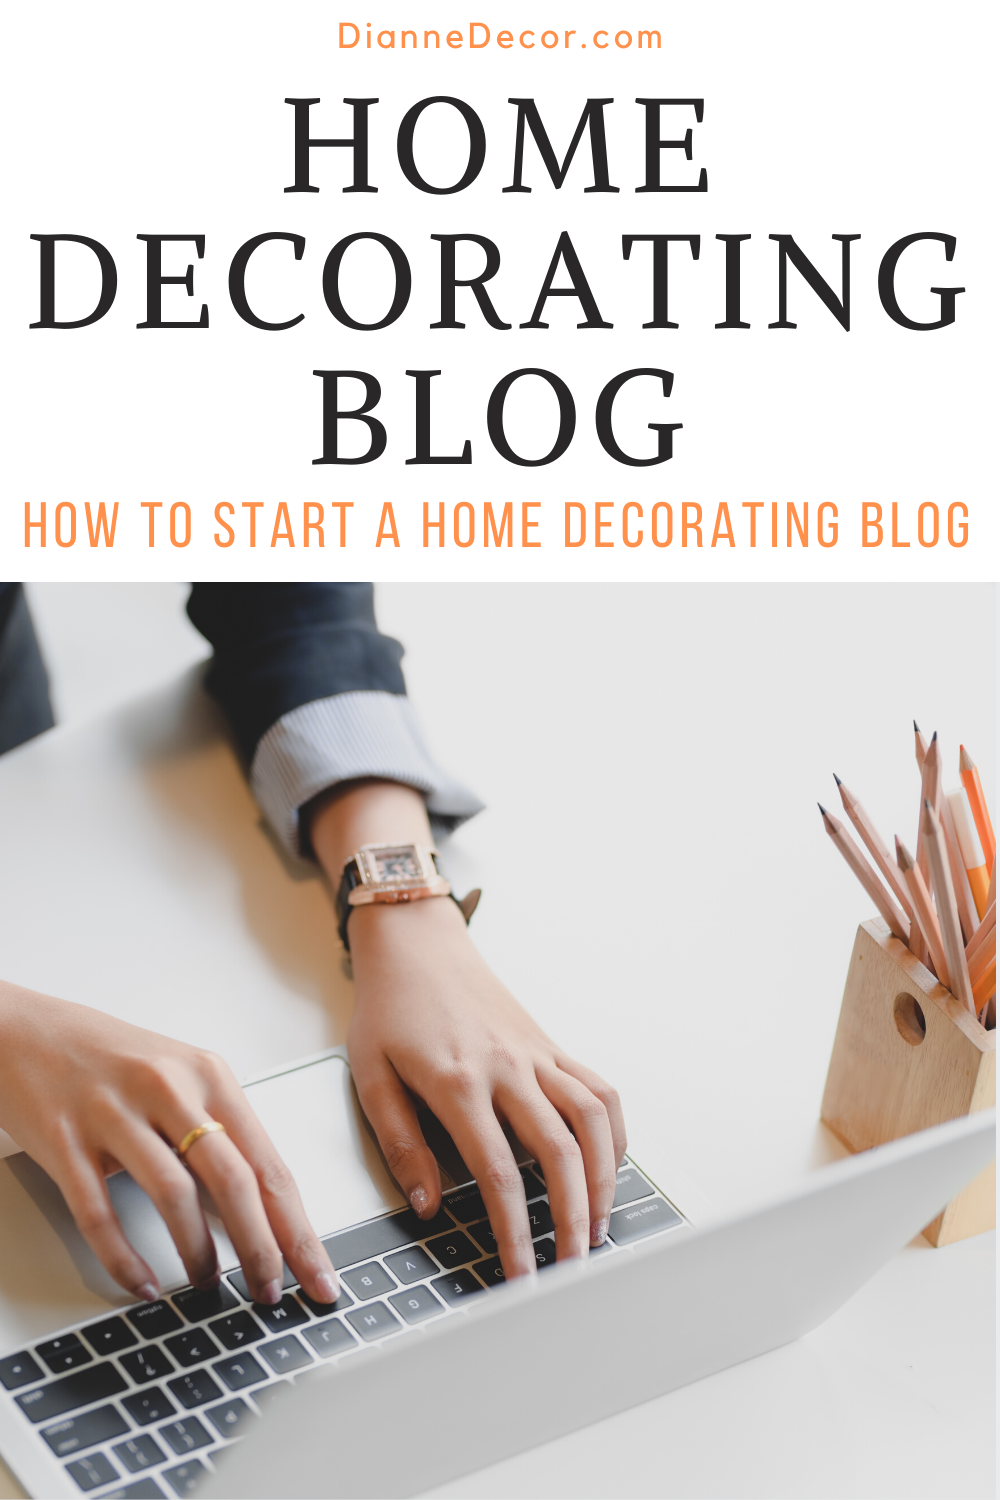 Starting a home decorating blog has been one of the most rewarding decisions I've ever made. Here's what you need to know to start yours.    #homedecoratingblog #homedecorblog #homedecorblogger #howtostartablog #bloggingideas #bloggingtips